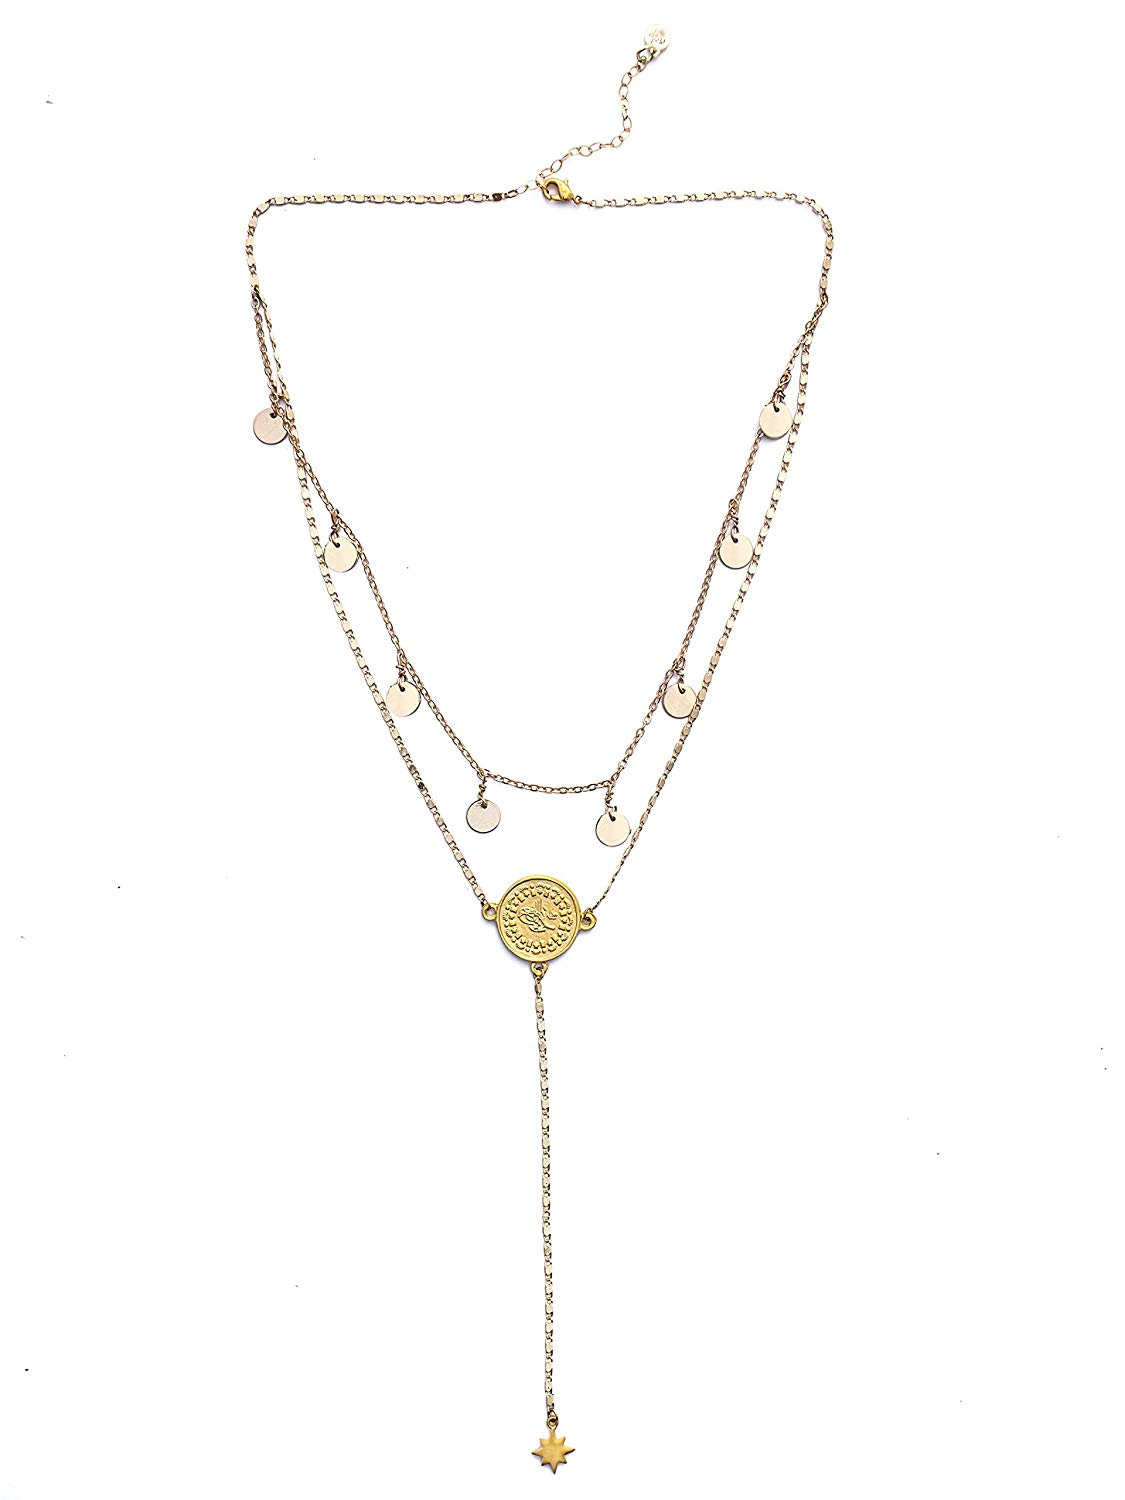 Mod + Jo Layered Lariat Necklace-18k Gold Plated Layered Necklace-Delicate Layered Necklace